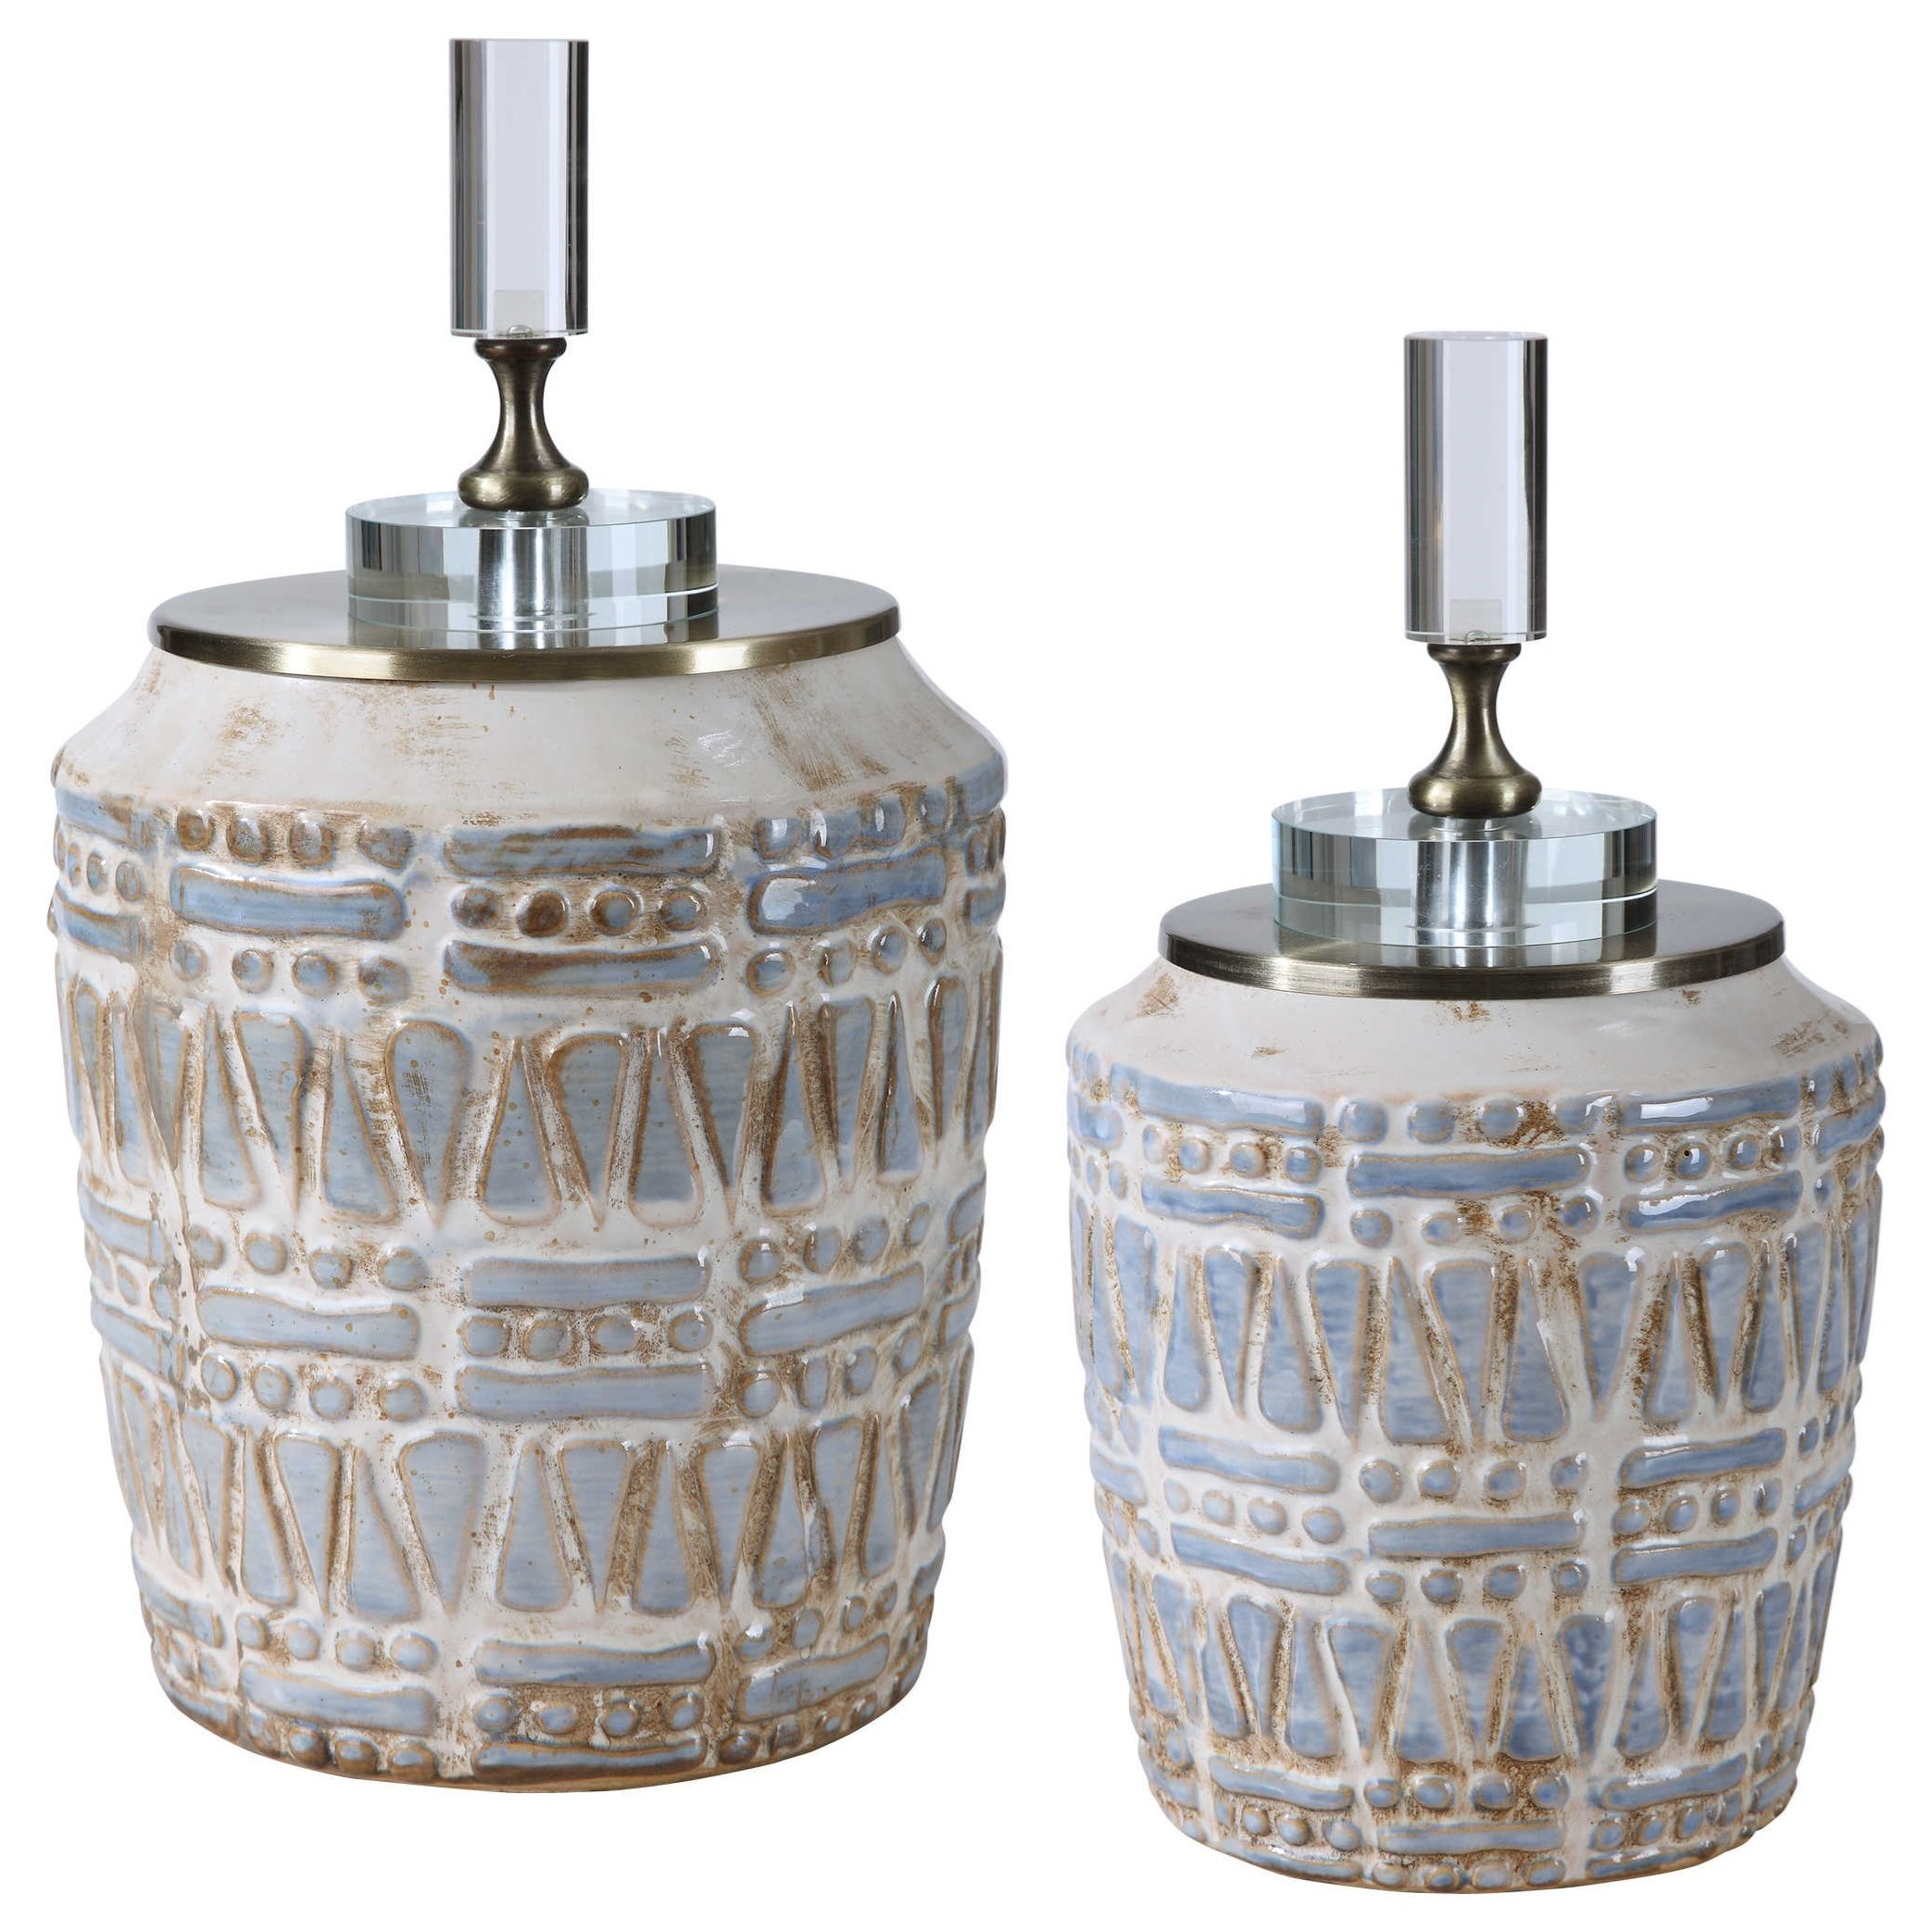 Accessories Lenape Ceramic Bottles, S/2 by Uttermost at Upper Room Home Furnishings